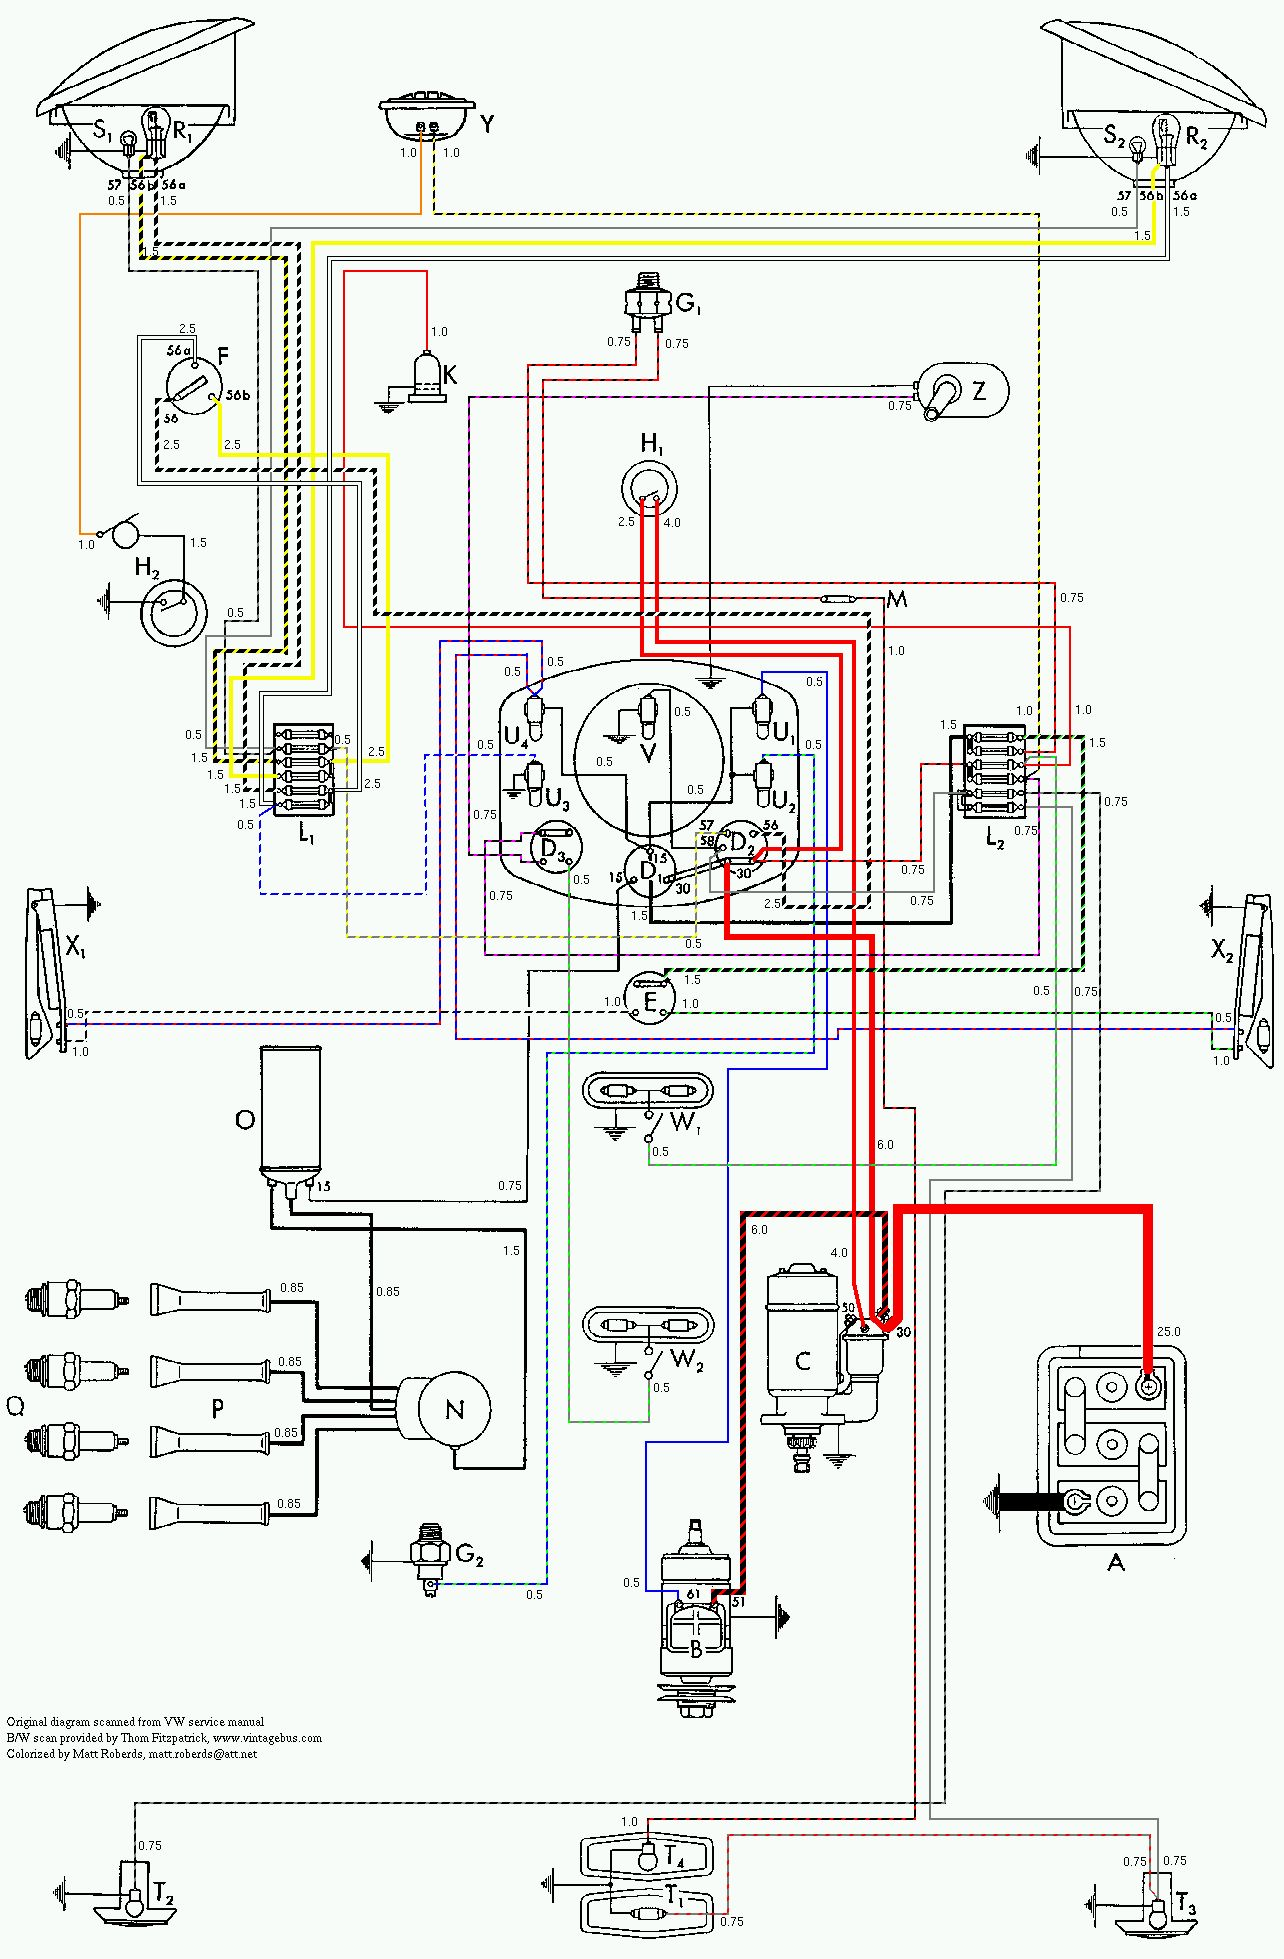 bus 53 color vintagebus com vw bus (and other) wiring diagrams Vanagon Interior Light Wiring at soozxer.org